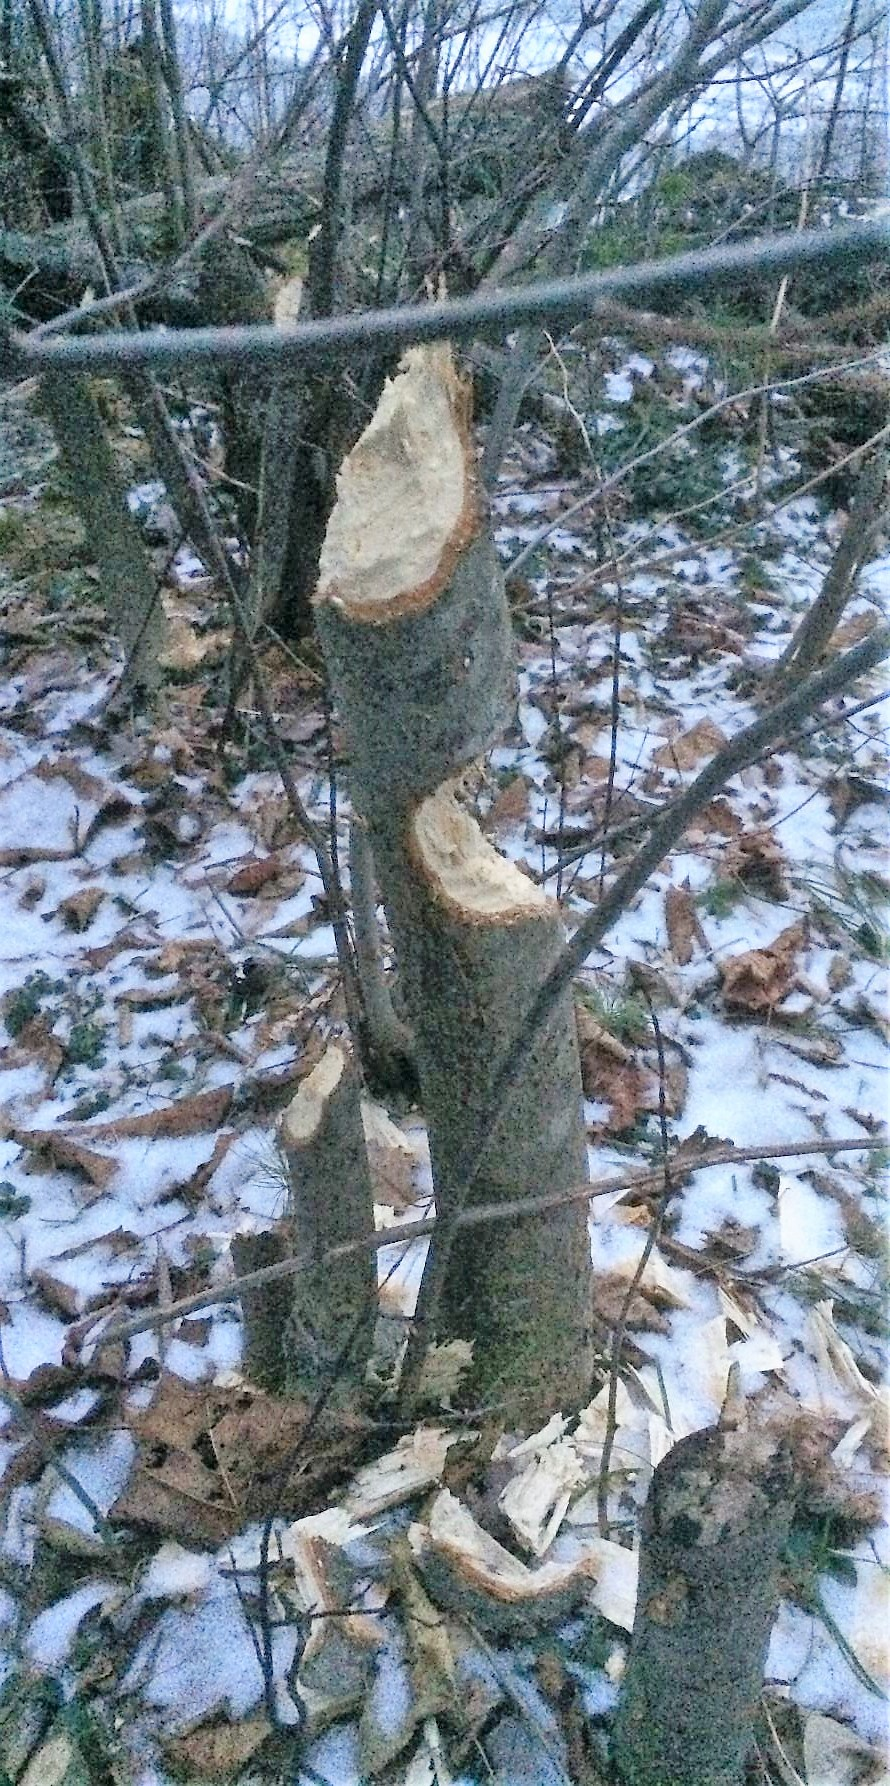 Beaver Damaged Trees at the Adirondack Wildlife Refuge